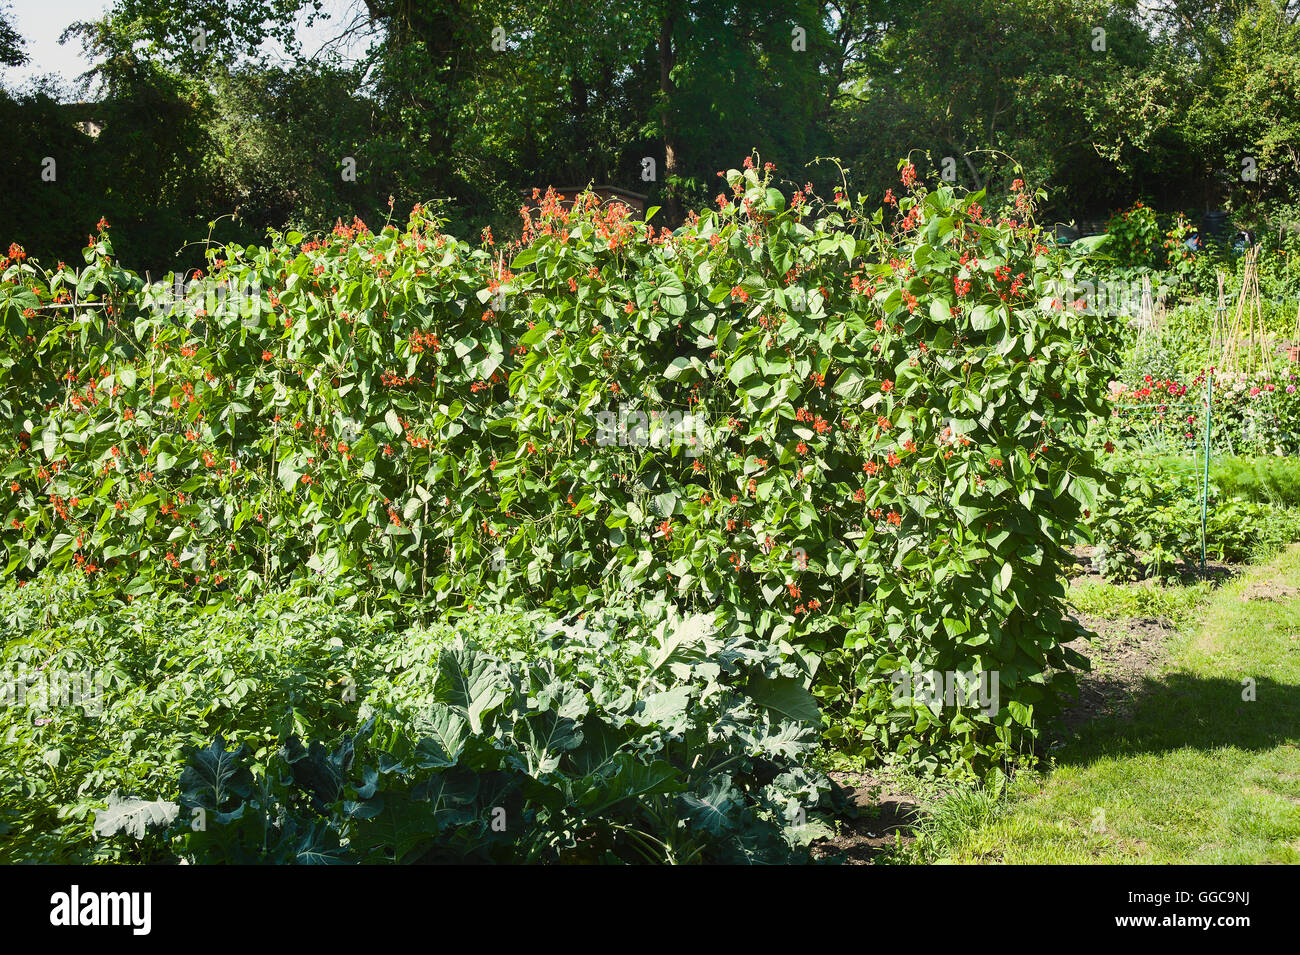 Vegetables including Runner Beans growing in a village allotment garden in Wiltshire UK - Stock Image